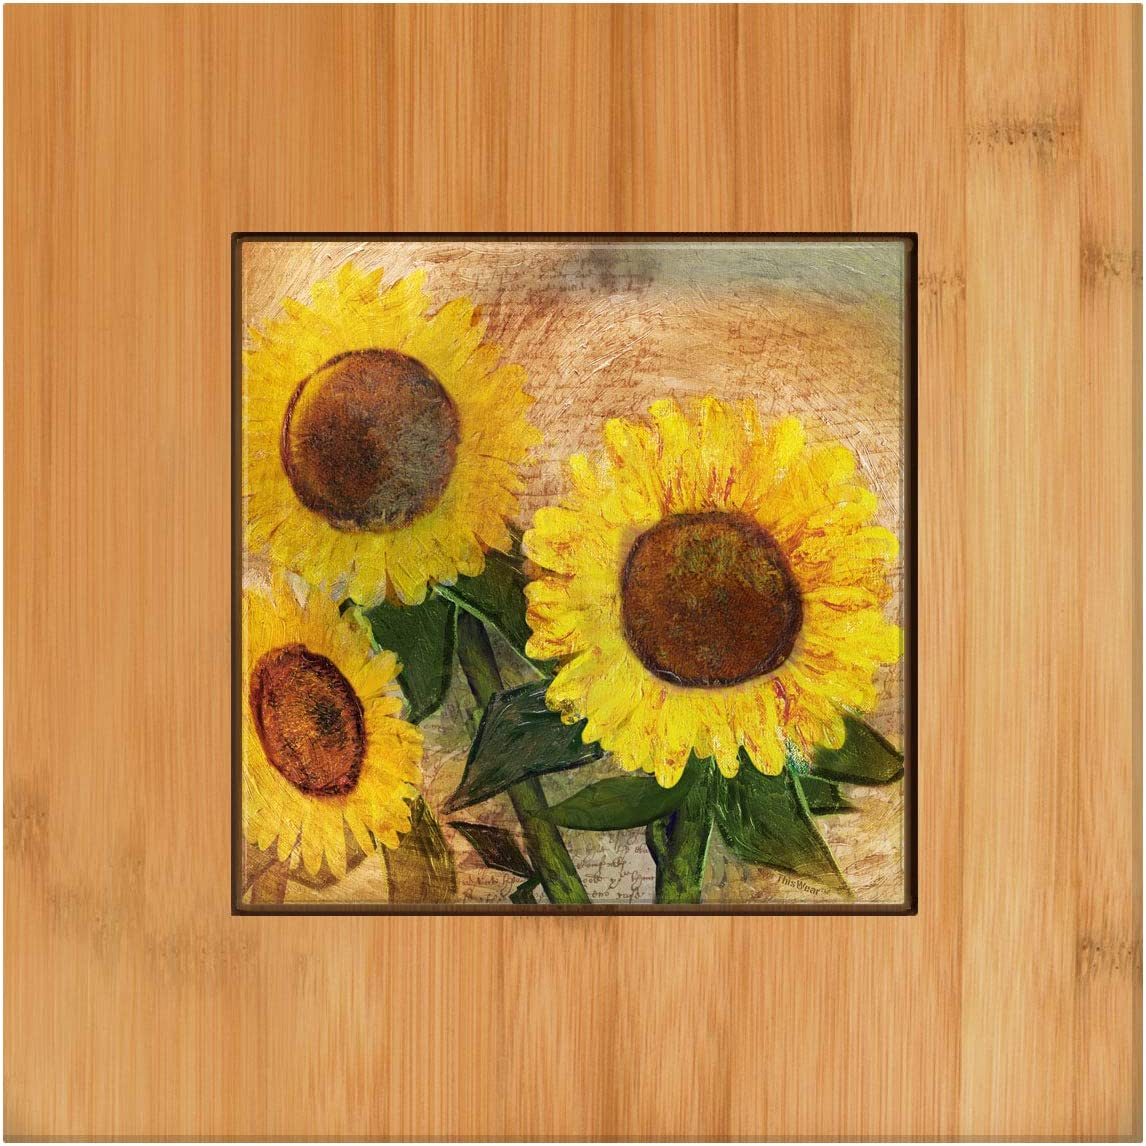 Amazon Com Rustic Farmhouse Decor Sunflower Kitchen Accessories Country Wedding Gifts Tile And Wood Trivet Dining